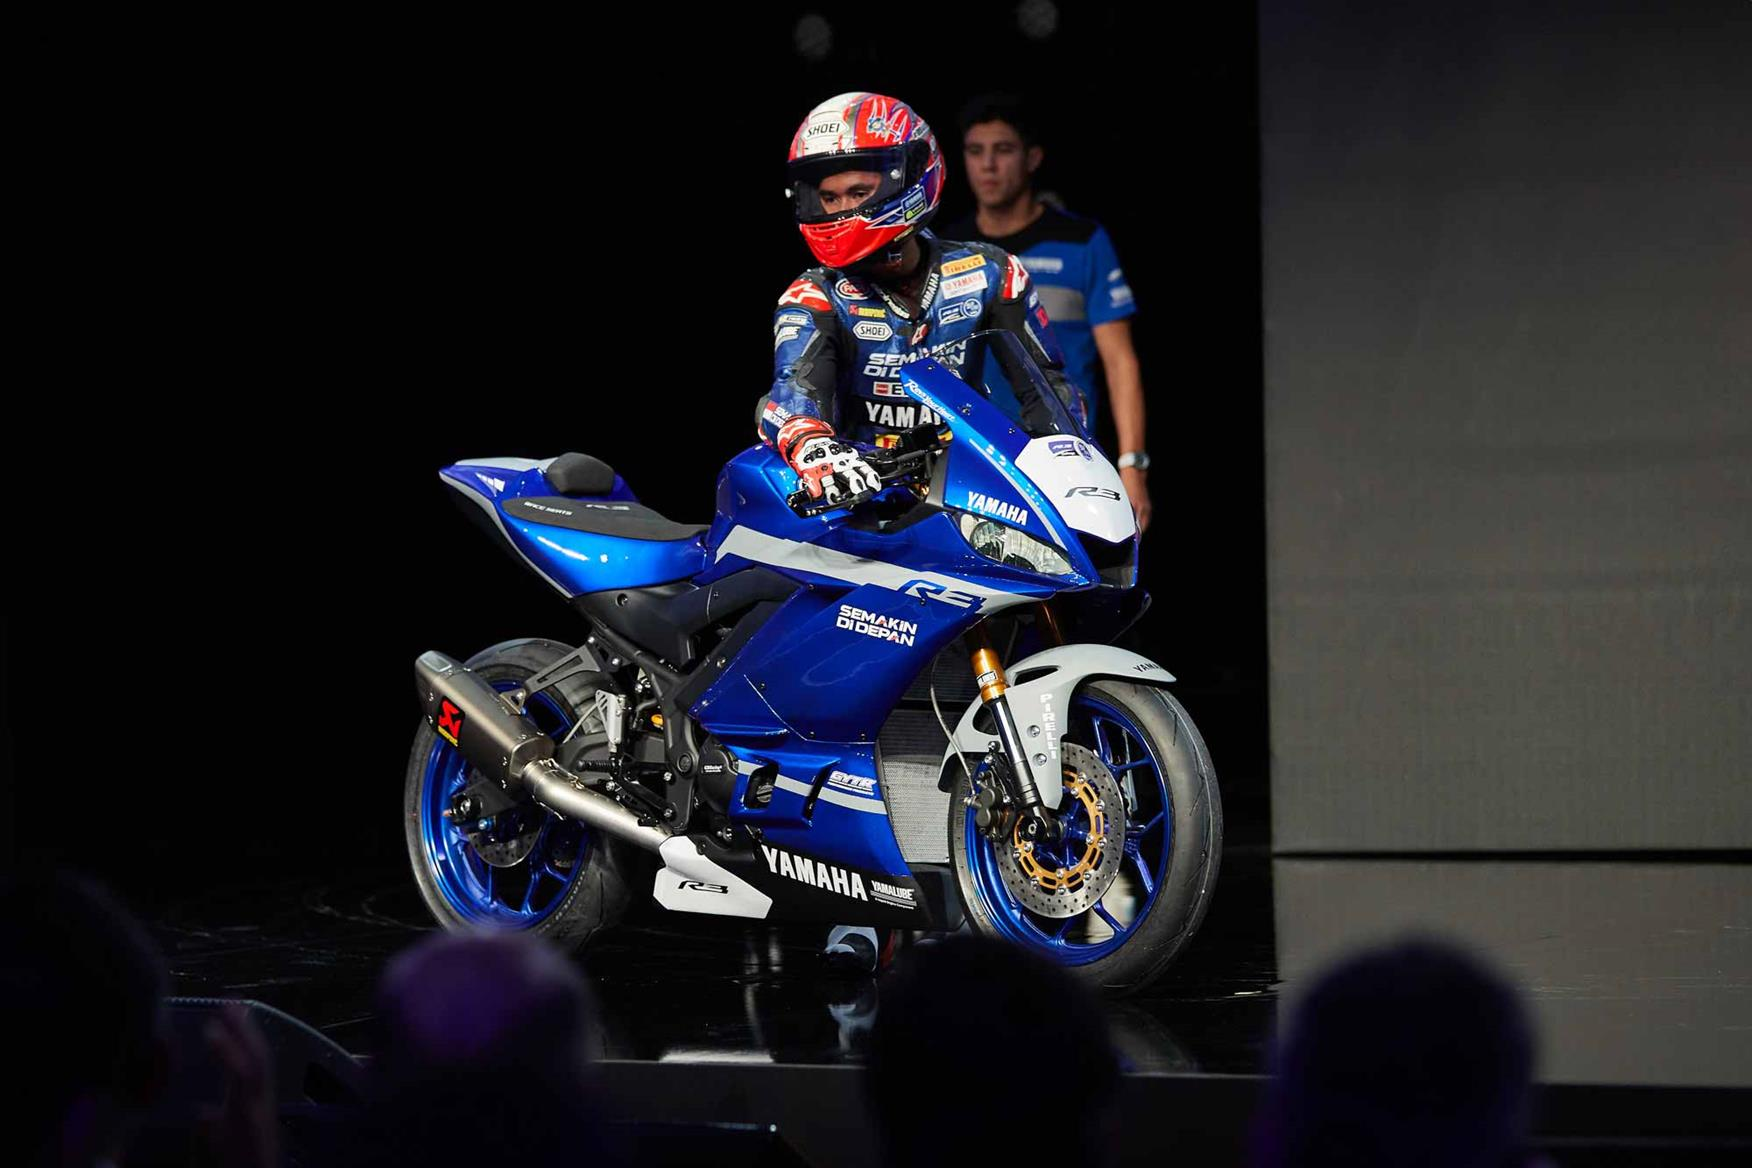 The Yamaha R3 GYTR ridden on stage